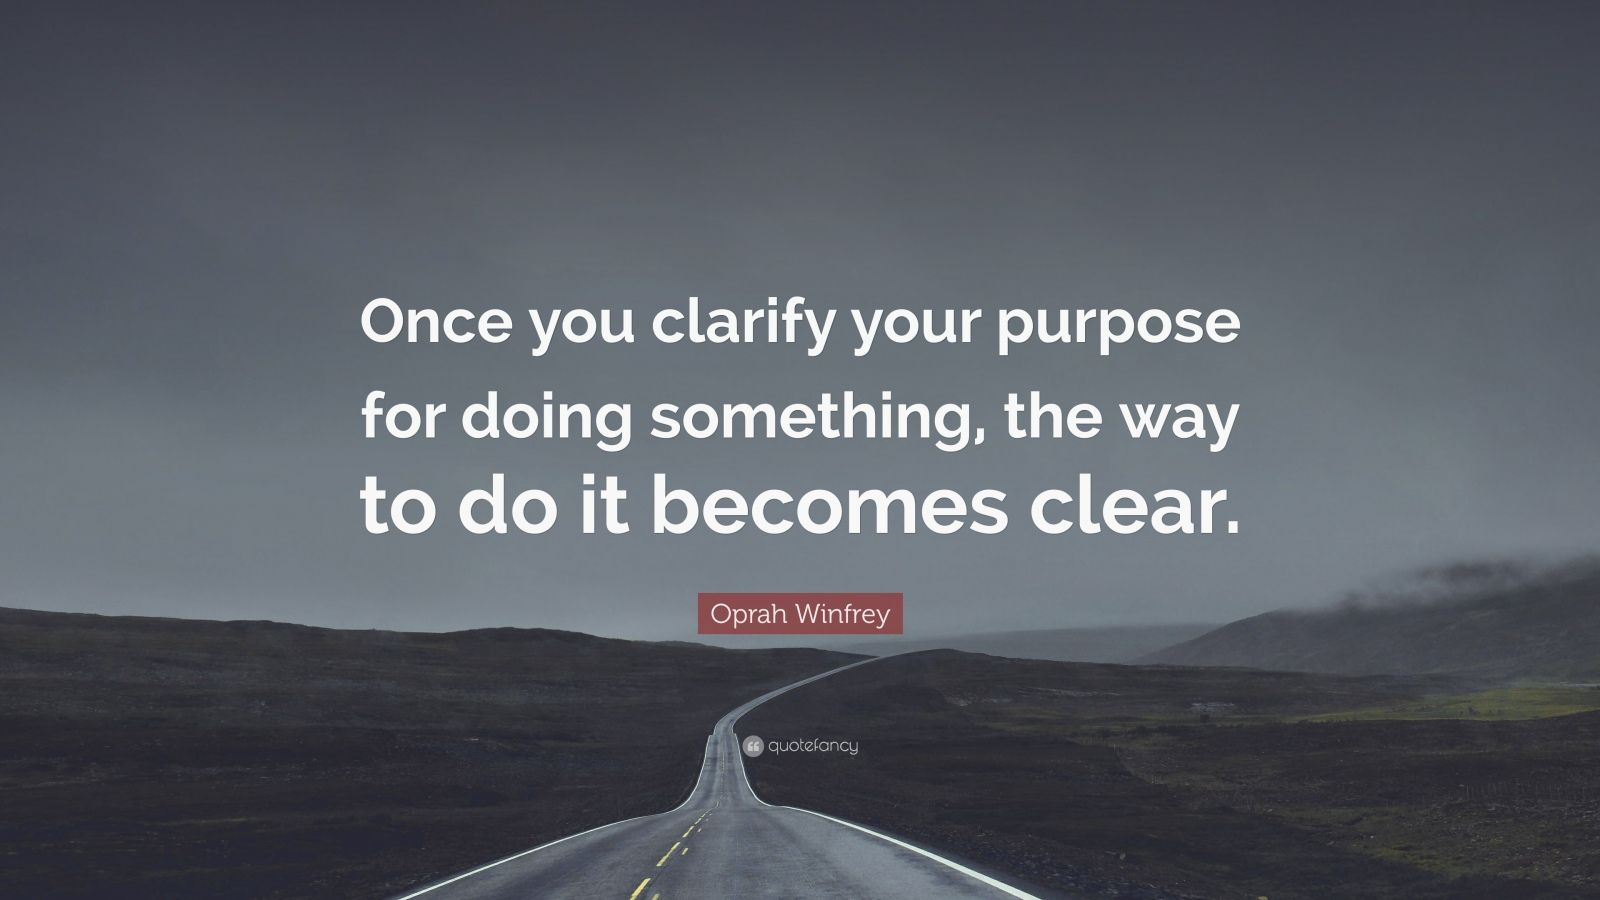 """Oprah Winfrey Quote: """"Once you clarify your purpose for doing something, the way to do it becomes clear."""""""